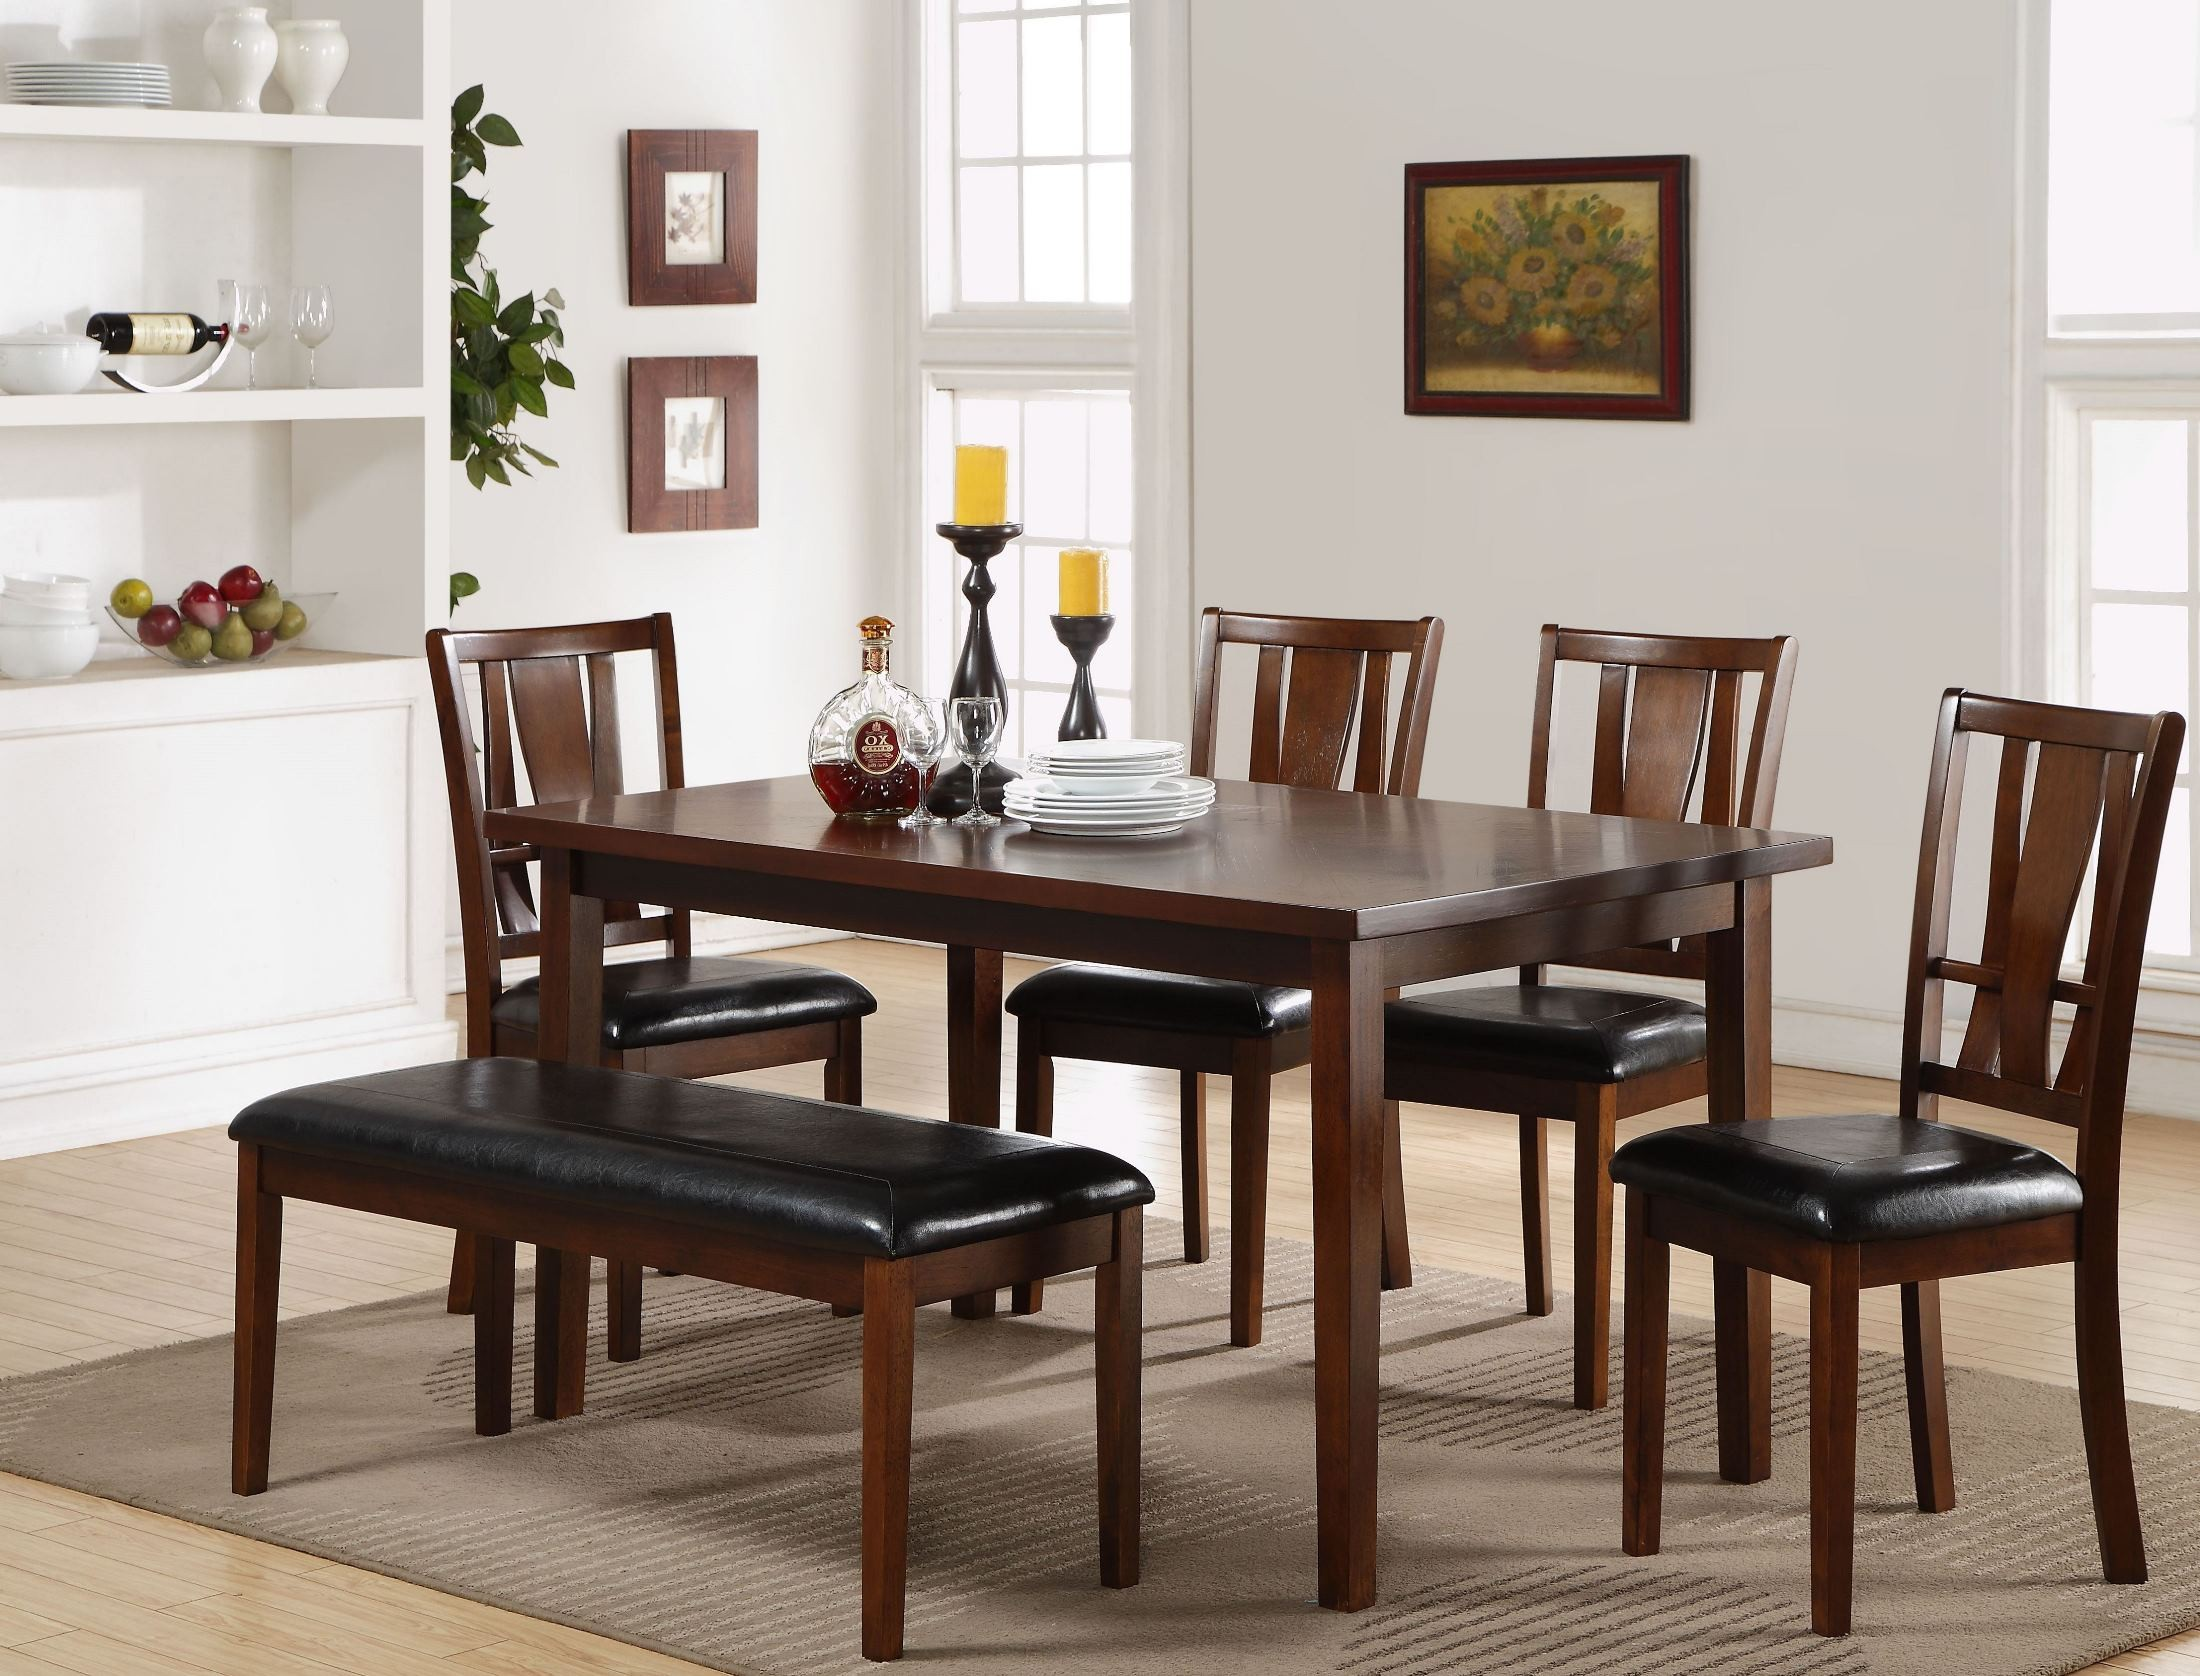 6 Pcs Dixon Dark Espresso Dining Room Set, D1426-60S, New Classics